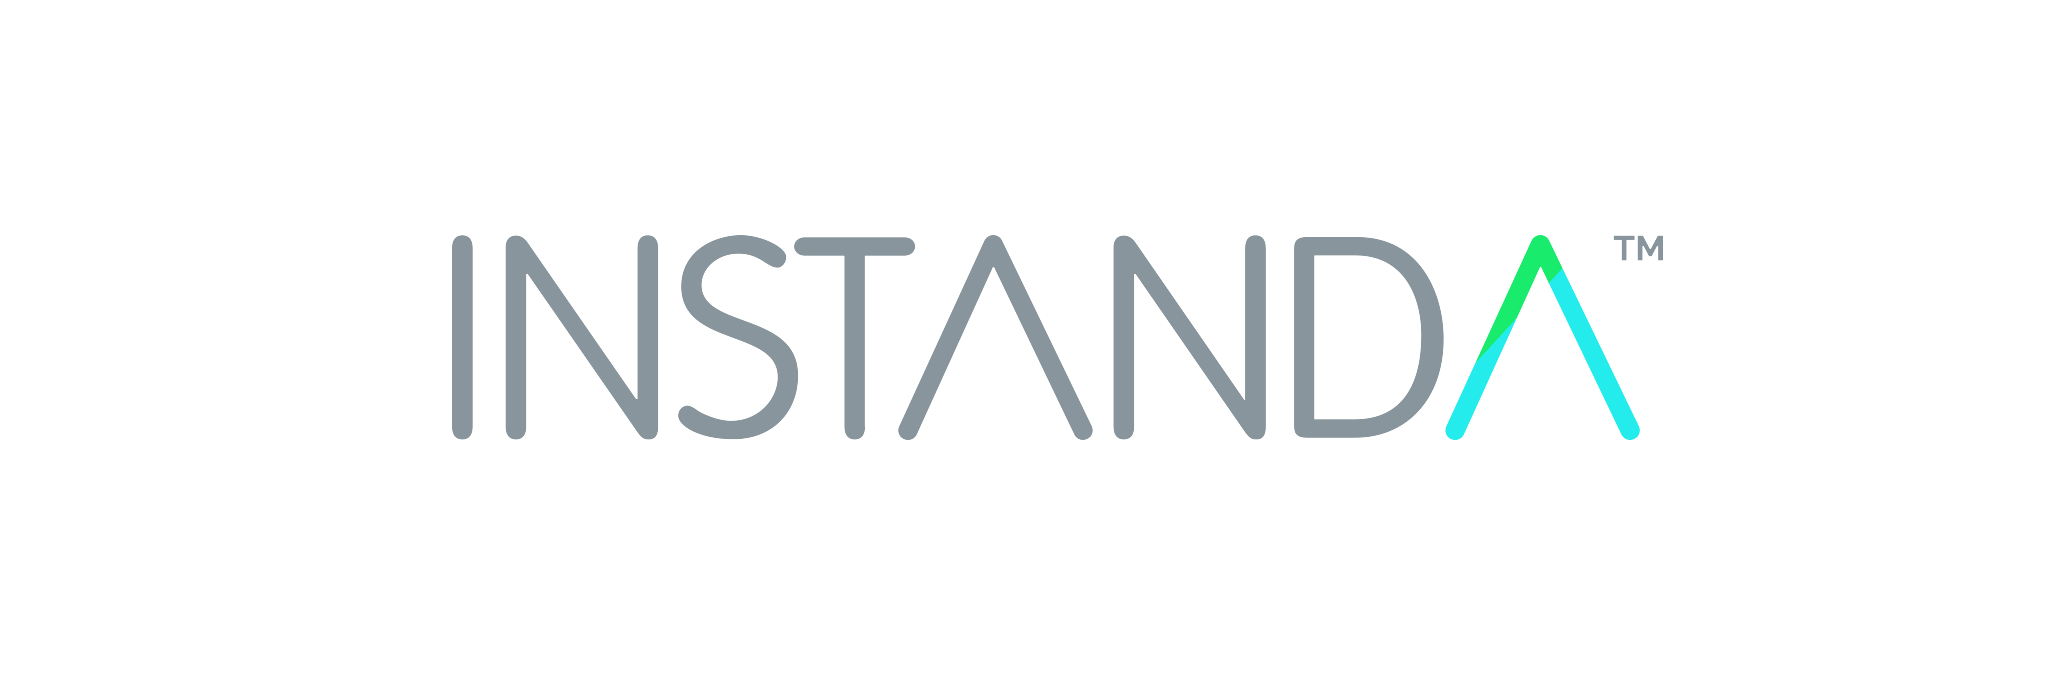 INSTANDA Partners with ADROSONIC to Rev Up Insurance Sector's Digital Transformation